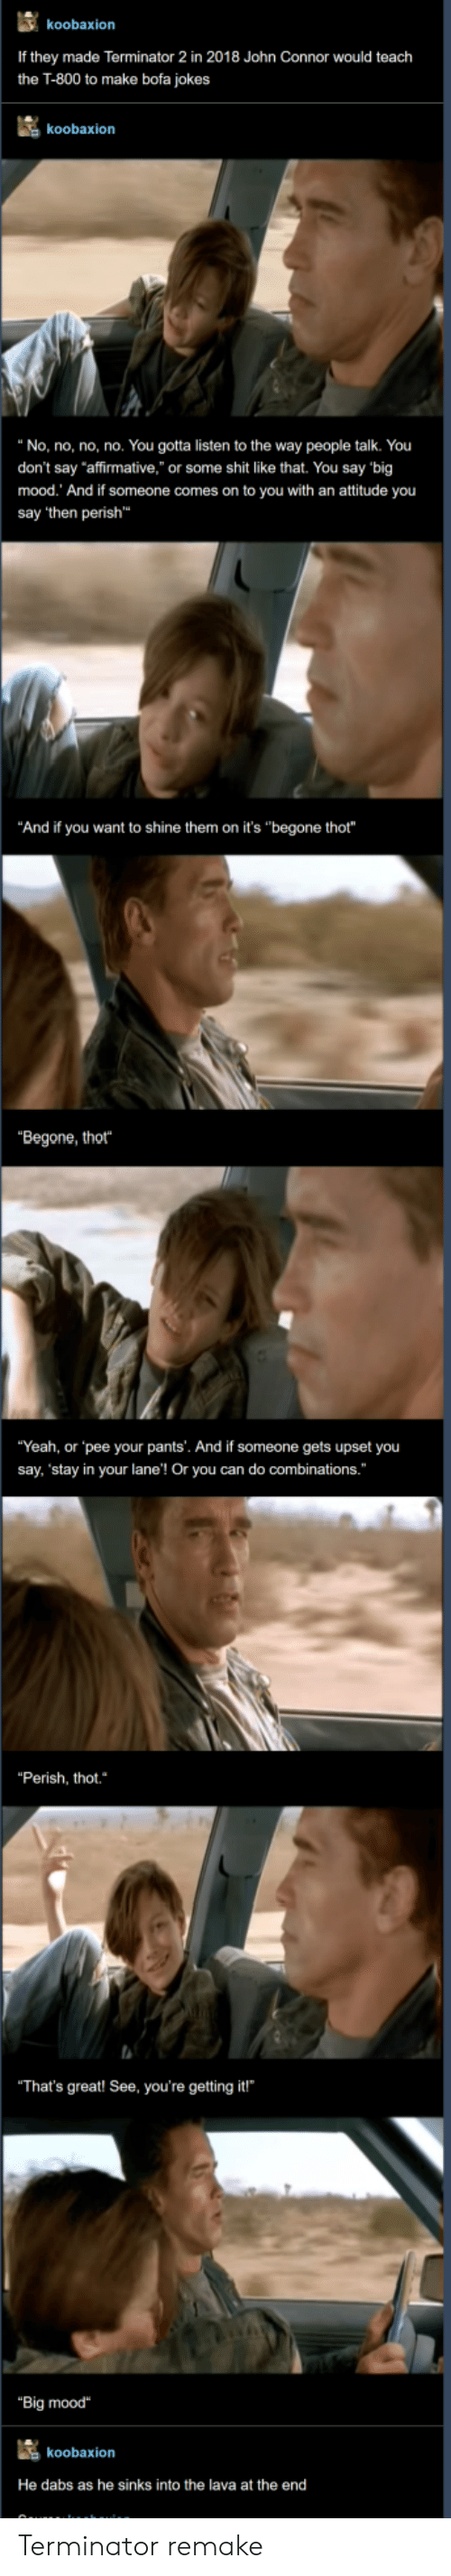 """Affirmative: koobaxion  If they made Terminator 2 in 2018 John Connor would teach  the T-800 to make bofa jokes  koobaxion  """"No, no, no, no. You gotta listen to the way people talk. You  don't say """"affirmative,"""" or some shit like that. You say 'big  mood. And if someone comes on to you with an attitude you  say 'then perish  """"And if you want to shine them on it's """"begone thot""""  """"Begone, thot  """"Yeah, or pee your pants'. And if someone gets upset you  say, 'stay in your lane'! Or you can do combinations.  """"Perish, thot.  That's great! See, you're getting it!  """"Big mood  koobaxion  He dabs as he sinks into the lava at the end Terminator remake"""